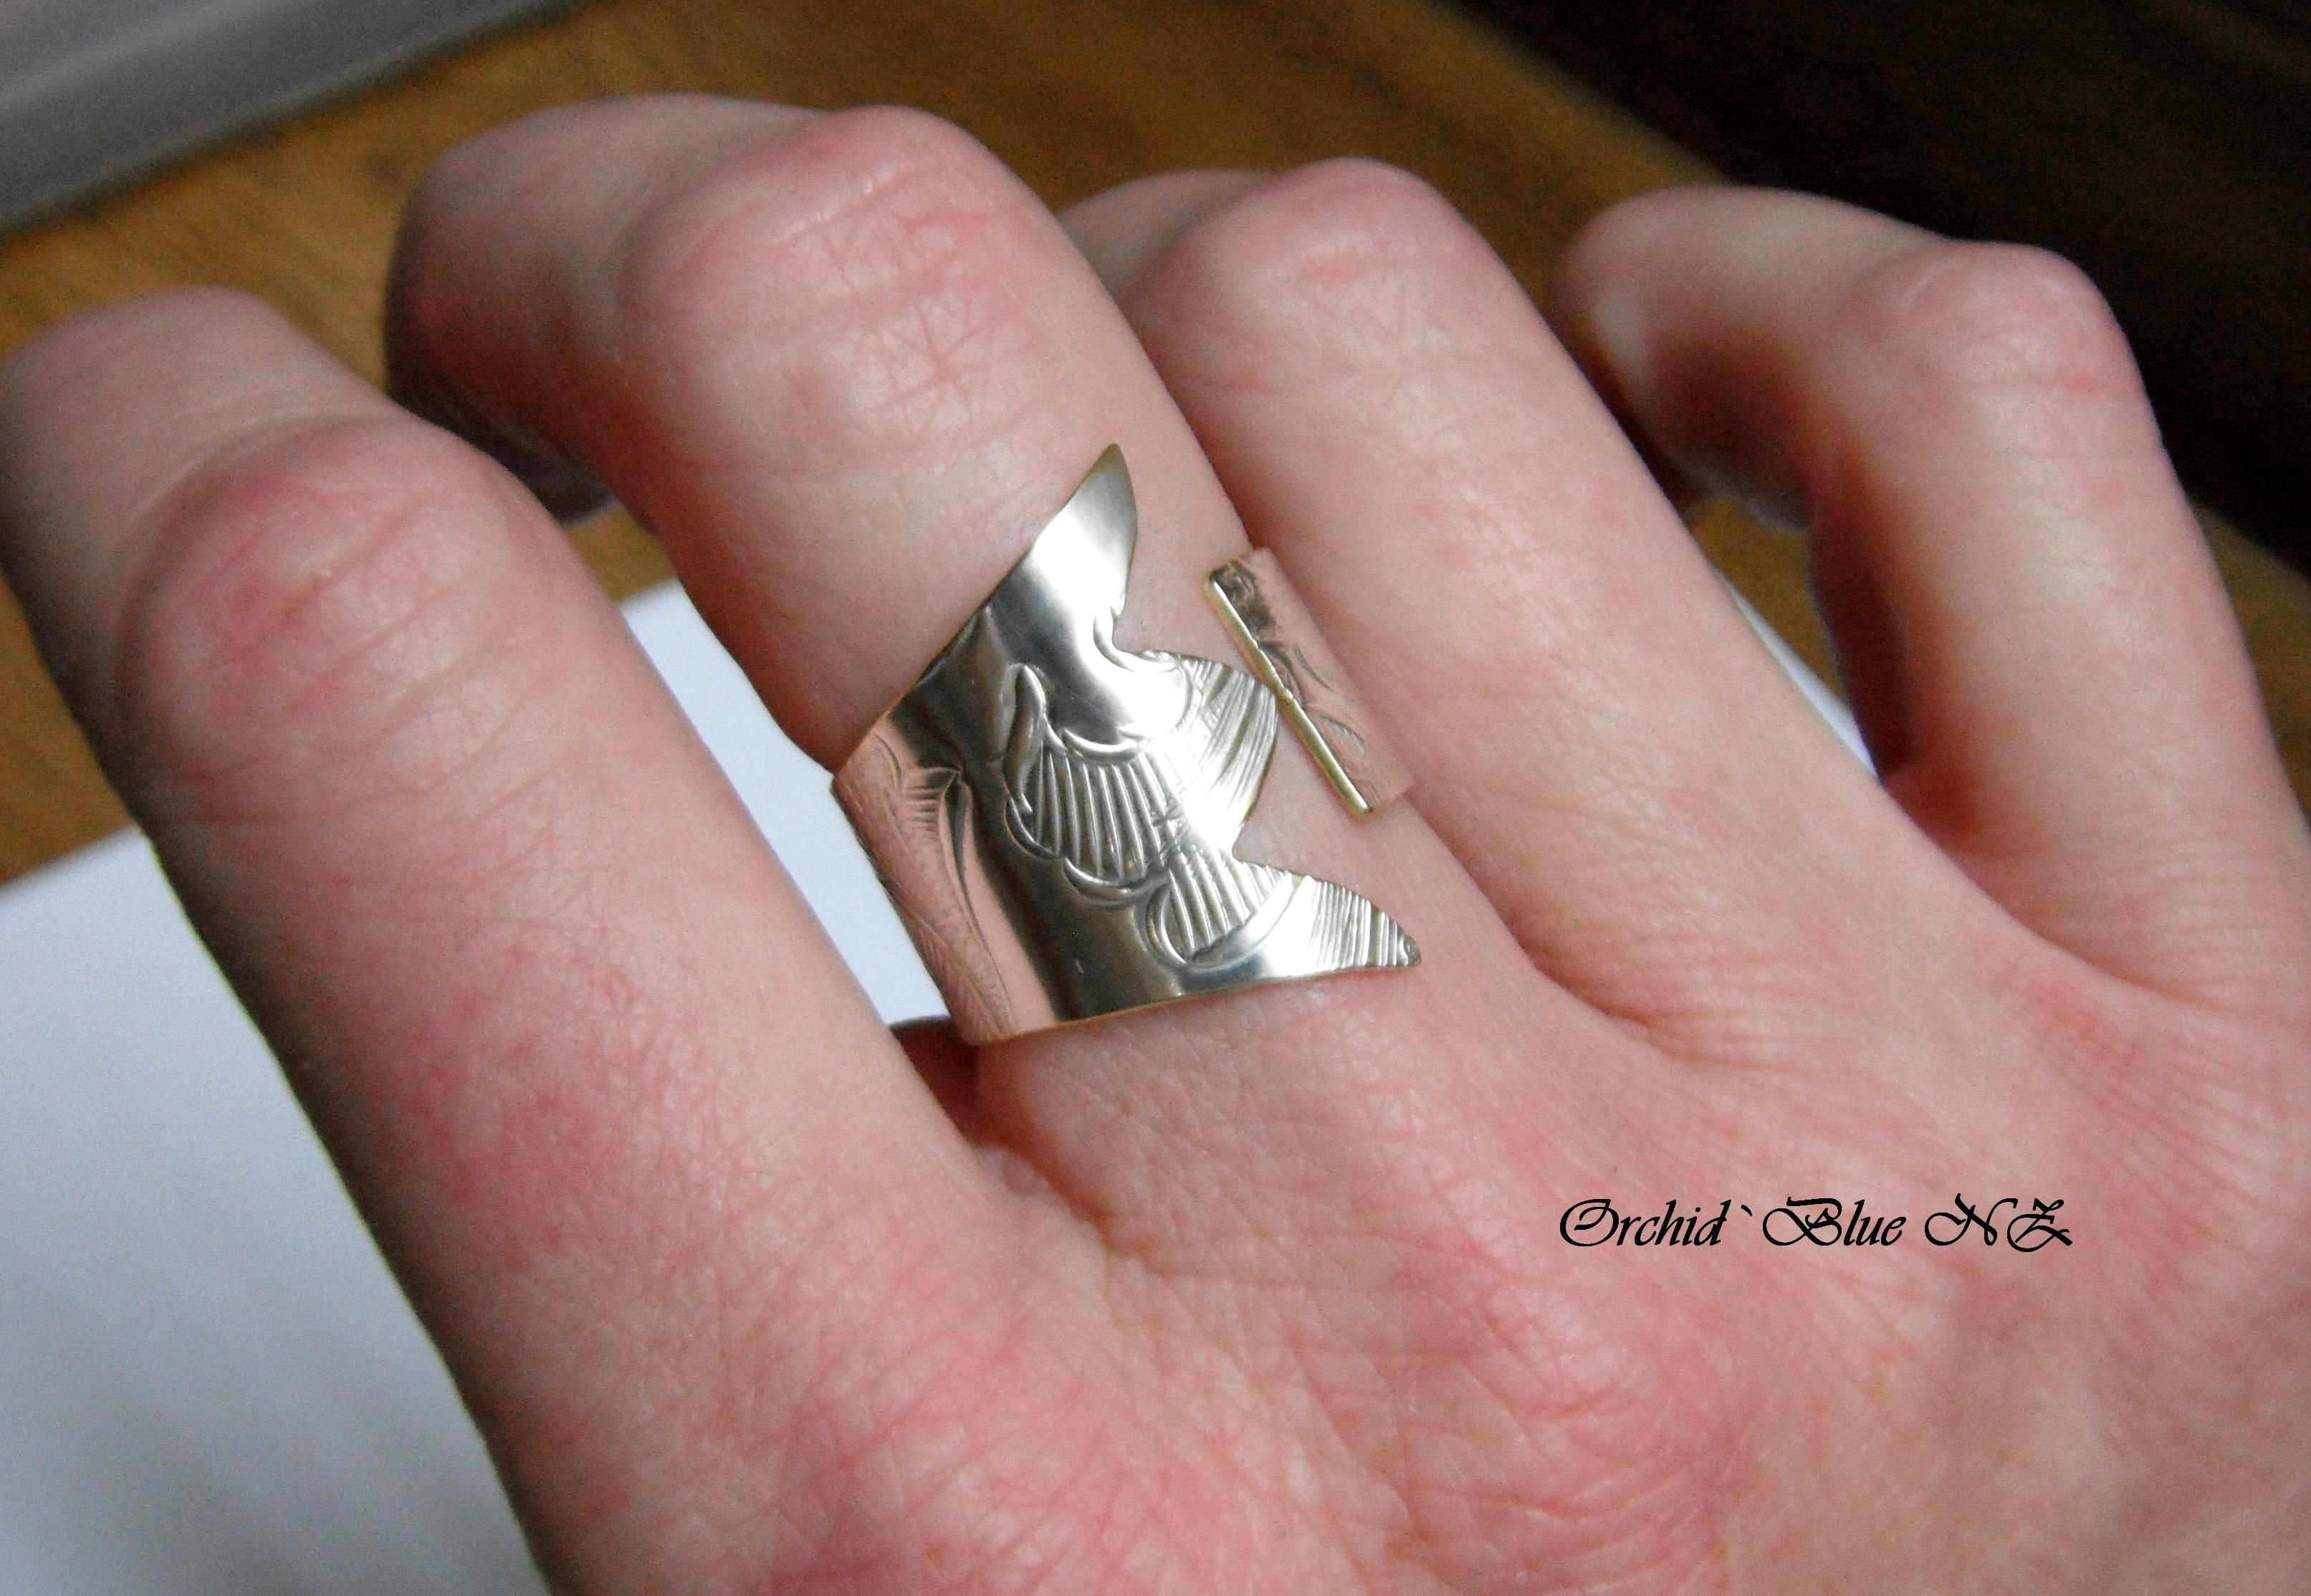 Orchid Blue NZ on Facebook .. Ring hand cut from a Vintage Silver ...